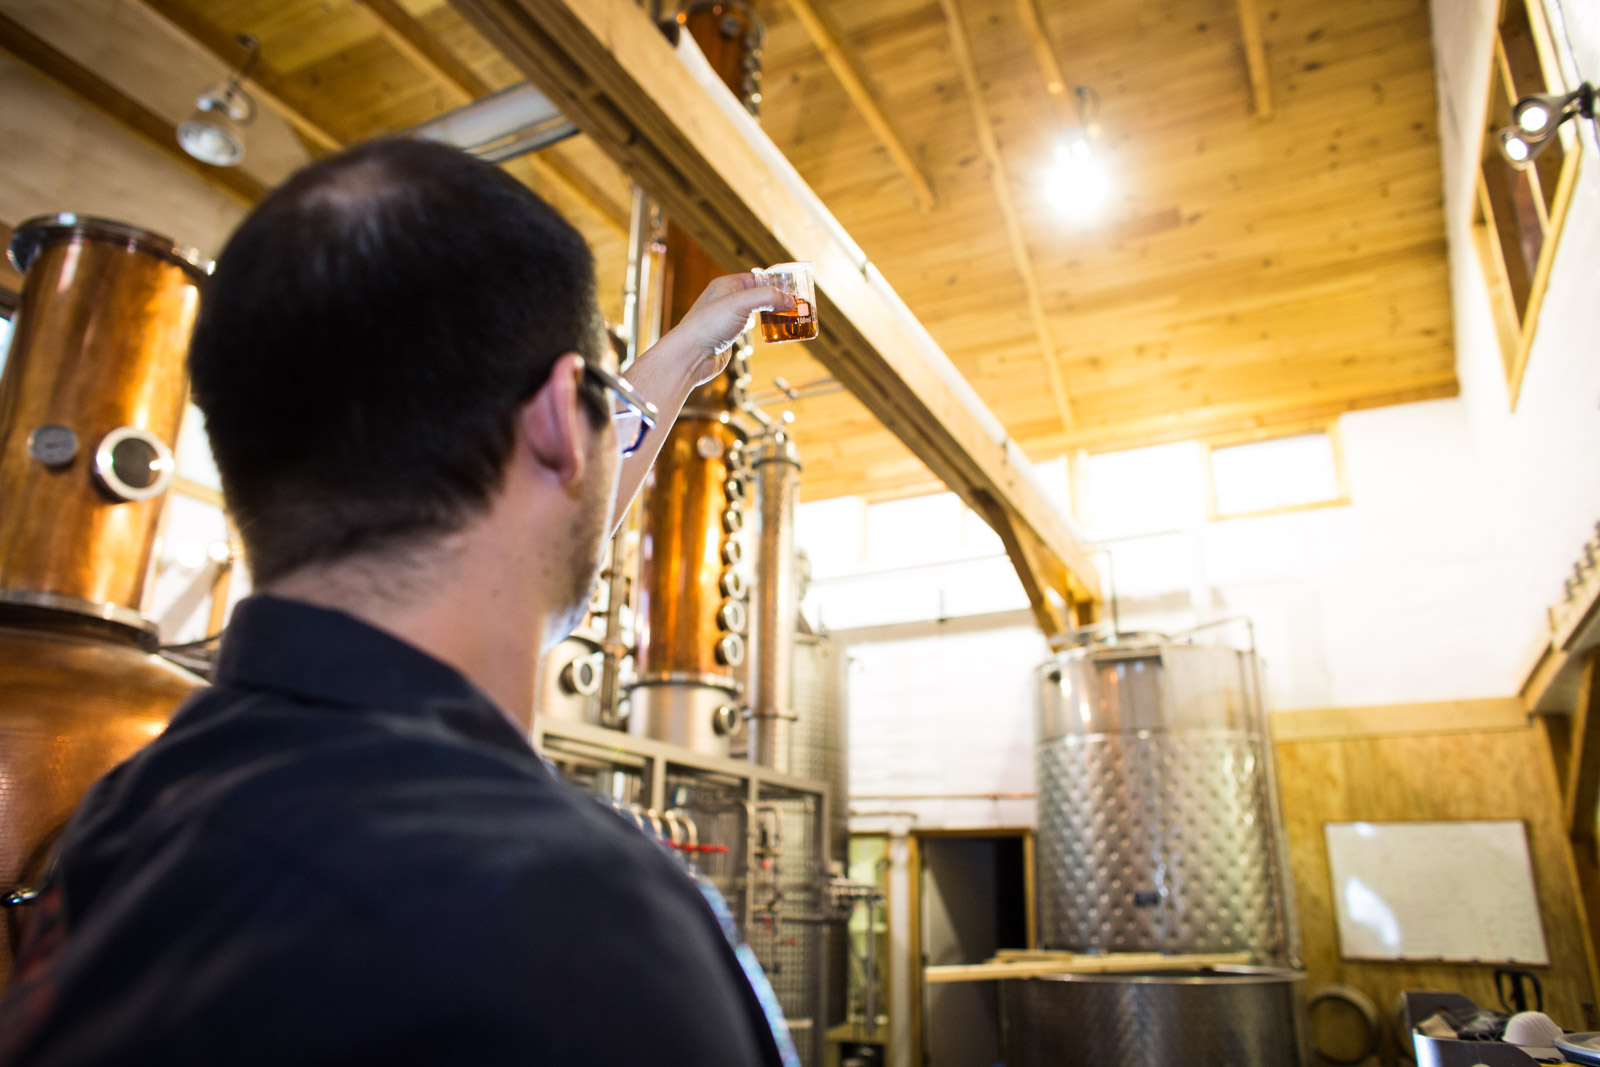 Silo Distillery, craft distillers in Windsor, Vermont. Photographed on location by Reciprocity Studio photographers.